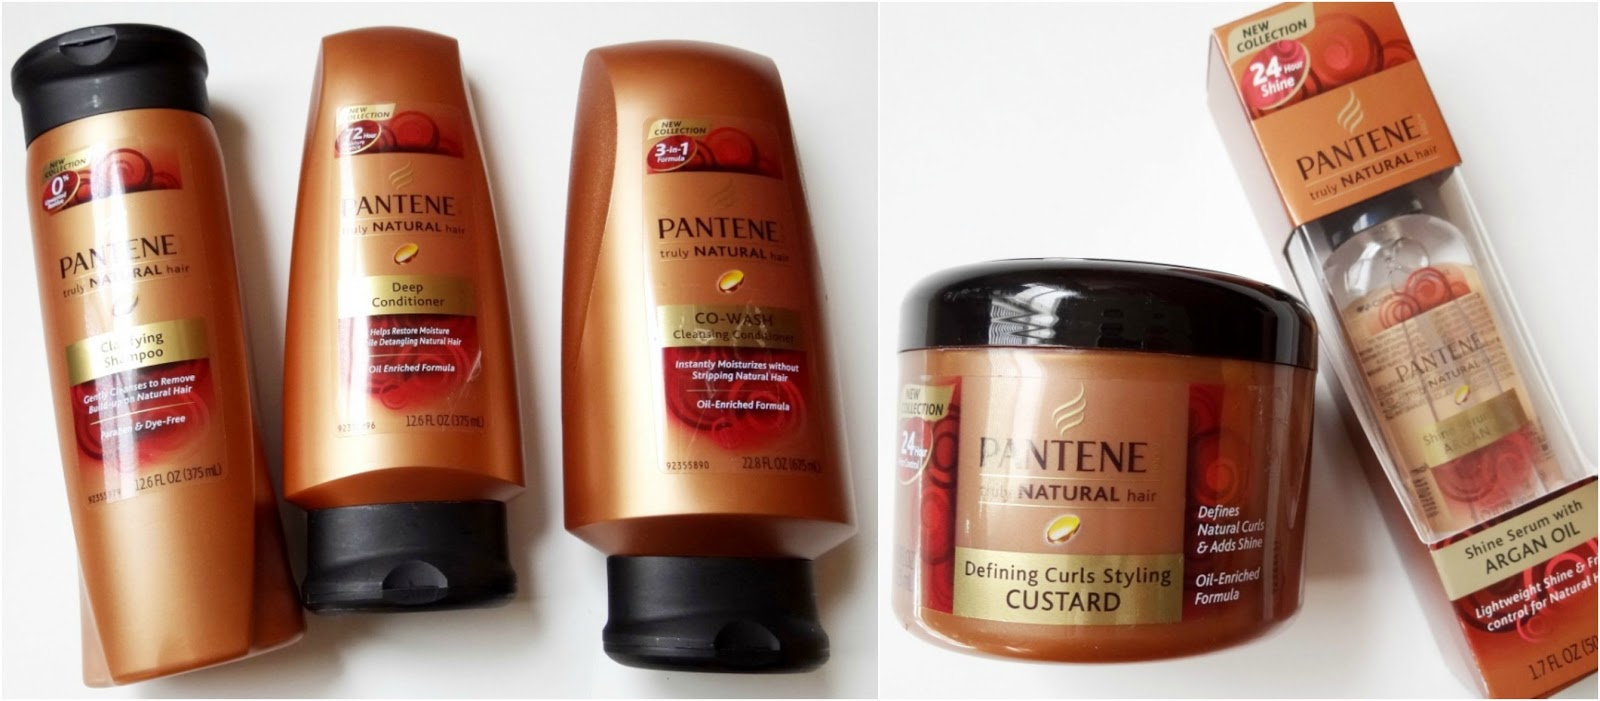 Swell Pantene Pro V Truly Natural Review Giveaway Baby Shopaholic Hairstyle Inspiration Daily Dogsangcom